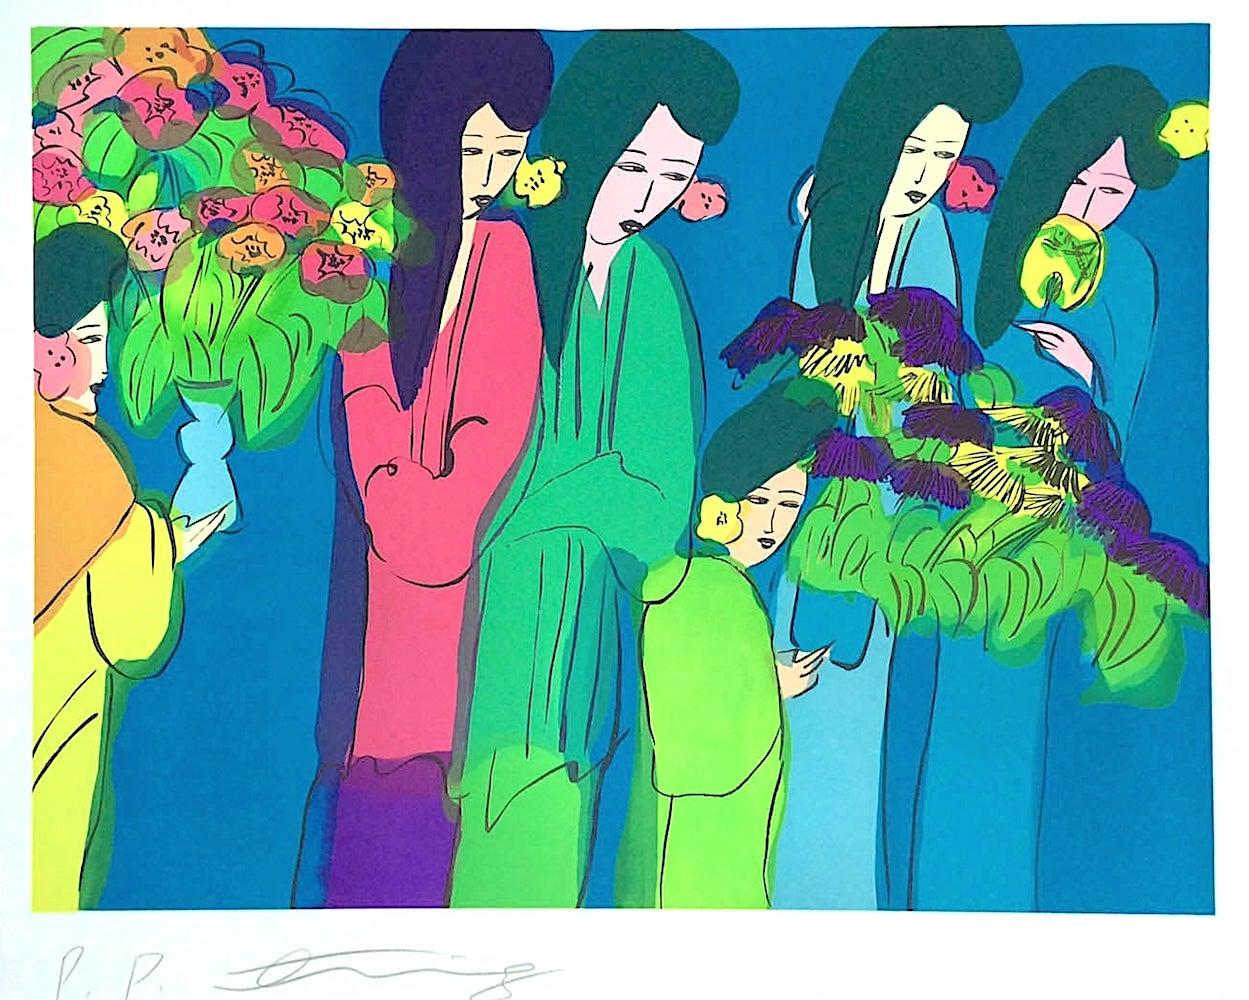 SIX GEISHA WITH FLOWERS Signed Lithograph Asian Women Kimonos Flowers Teal Blue